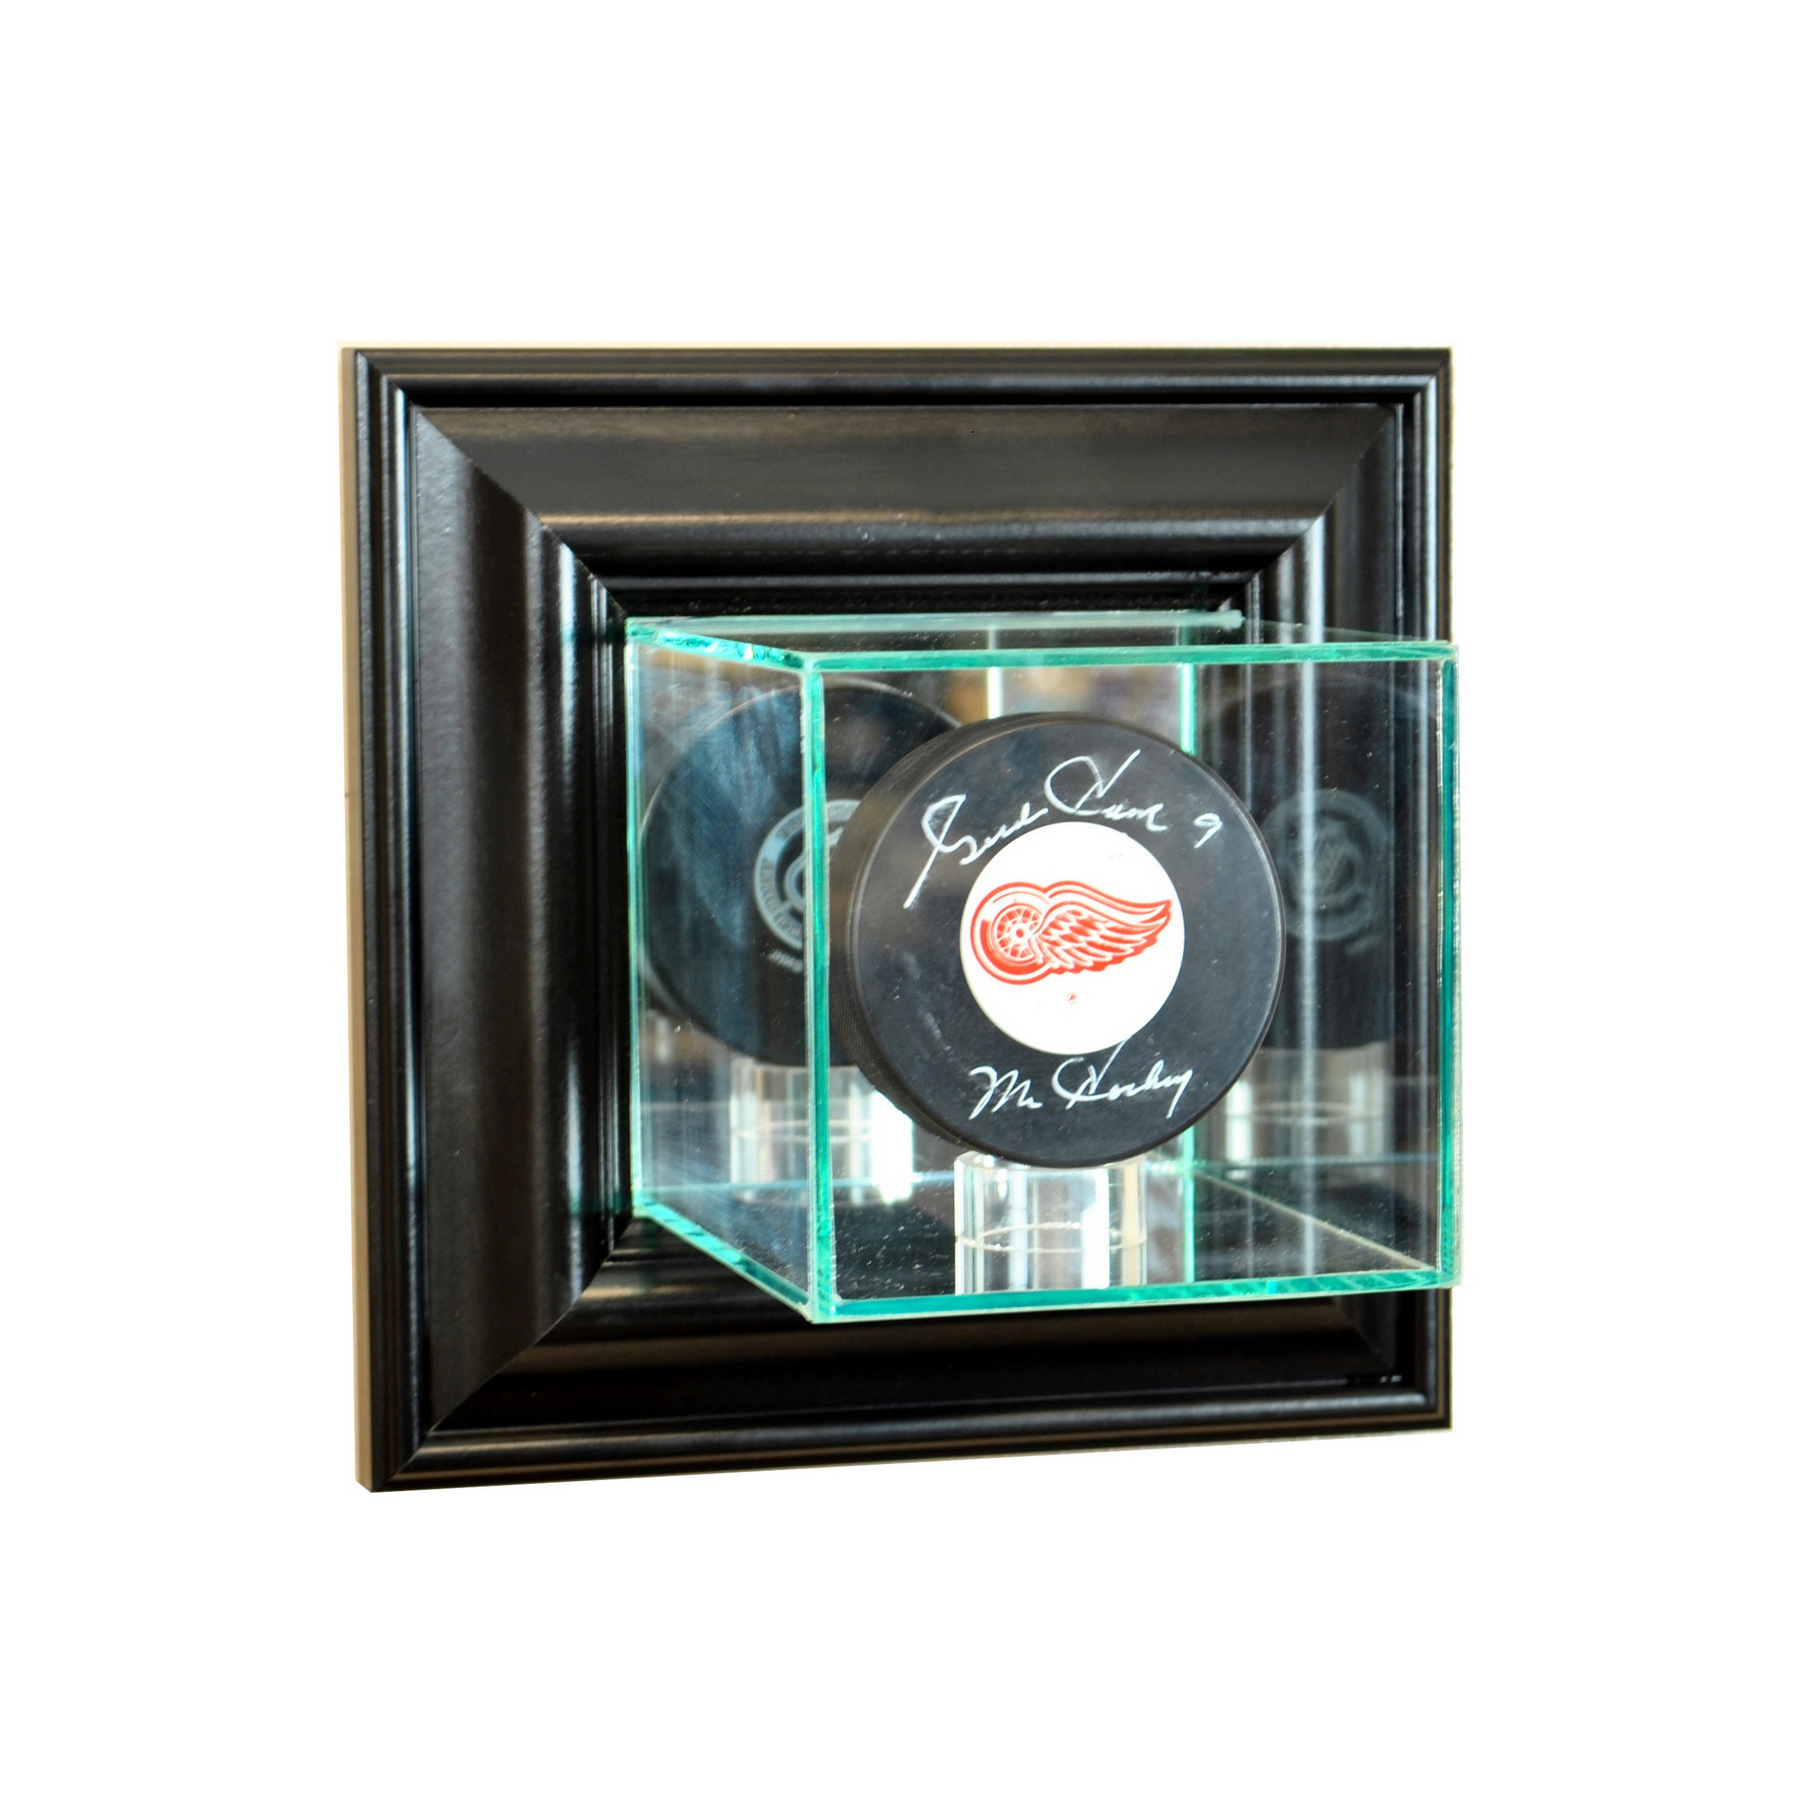 perfect cases wall mount black hockey puck display case ebay. Black Bedroom Furniture Sets. Home Design Ideas